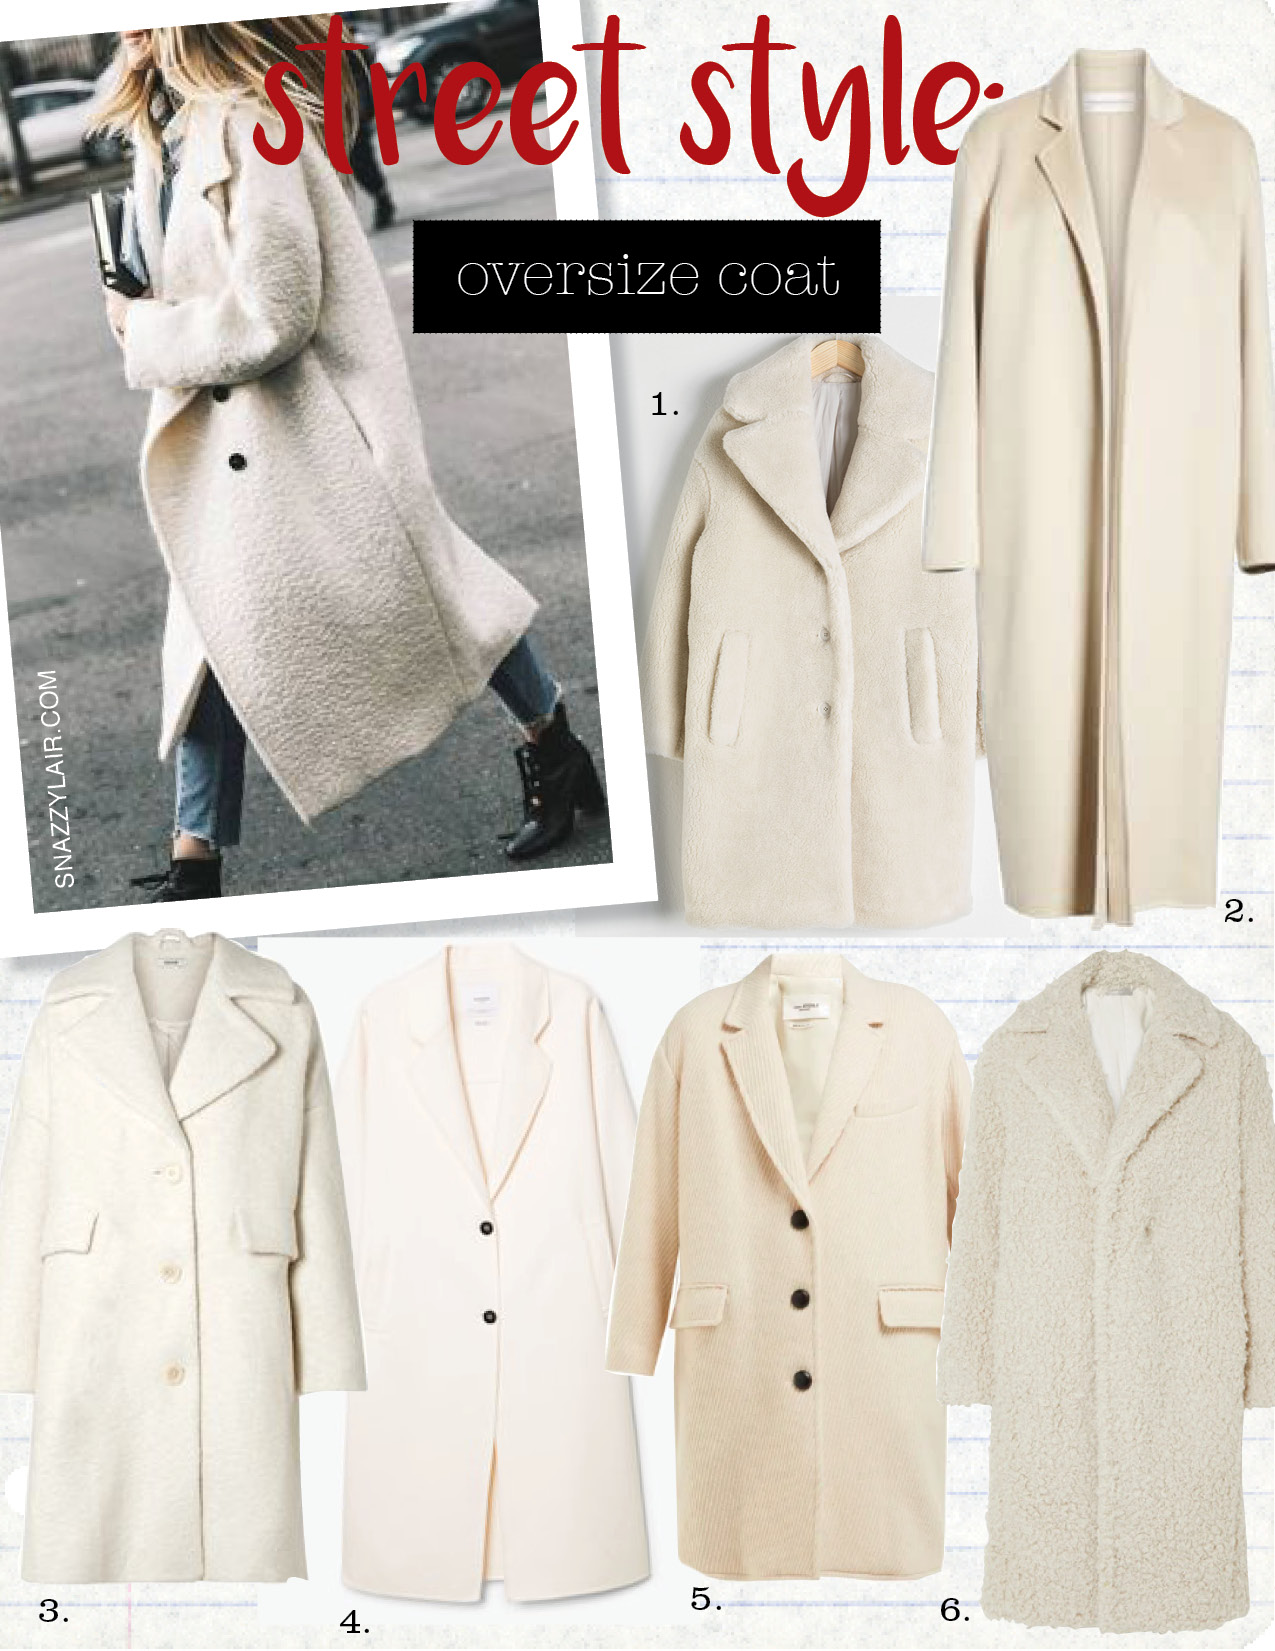 1. & other stories faux shearling coat, $179,  stories.com  2. Mansur Gavriel longline cashmere coat, $677,  nordstrom.com  3. ganni boucle wool oversized coat, $176,  ganni.com  4. mango wool-blend coat, $199,  mango.com  5. Isabel Marant etoile gimi oversized wool-blend tweed coat, $619,  matchesfashion.com  6. vince faux shearling coat, $347,  net-a-porter.com